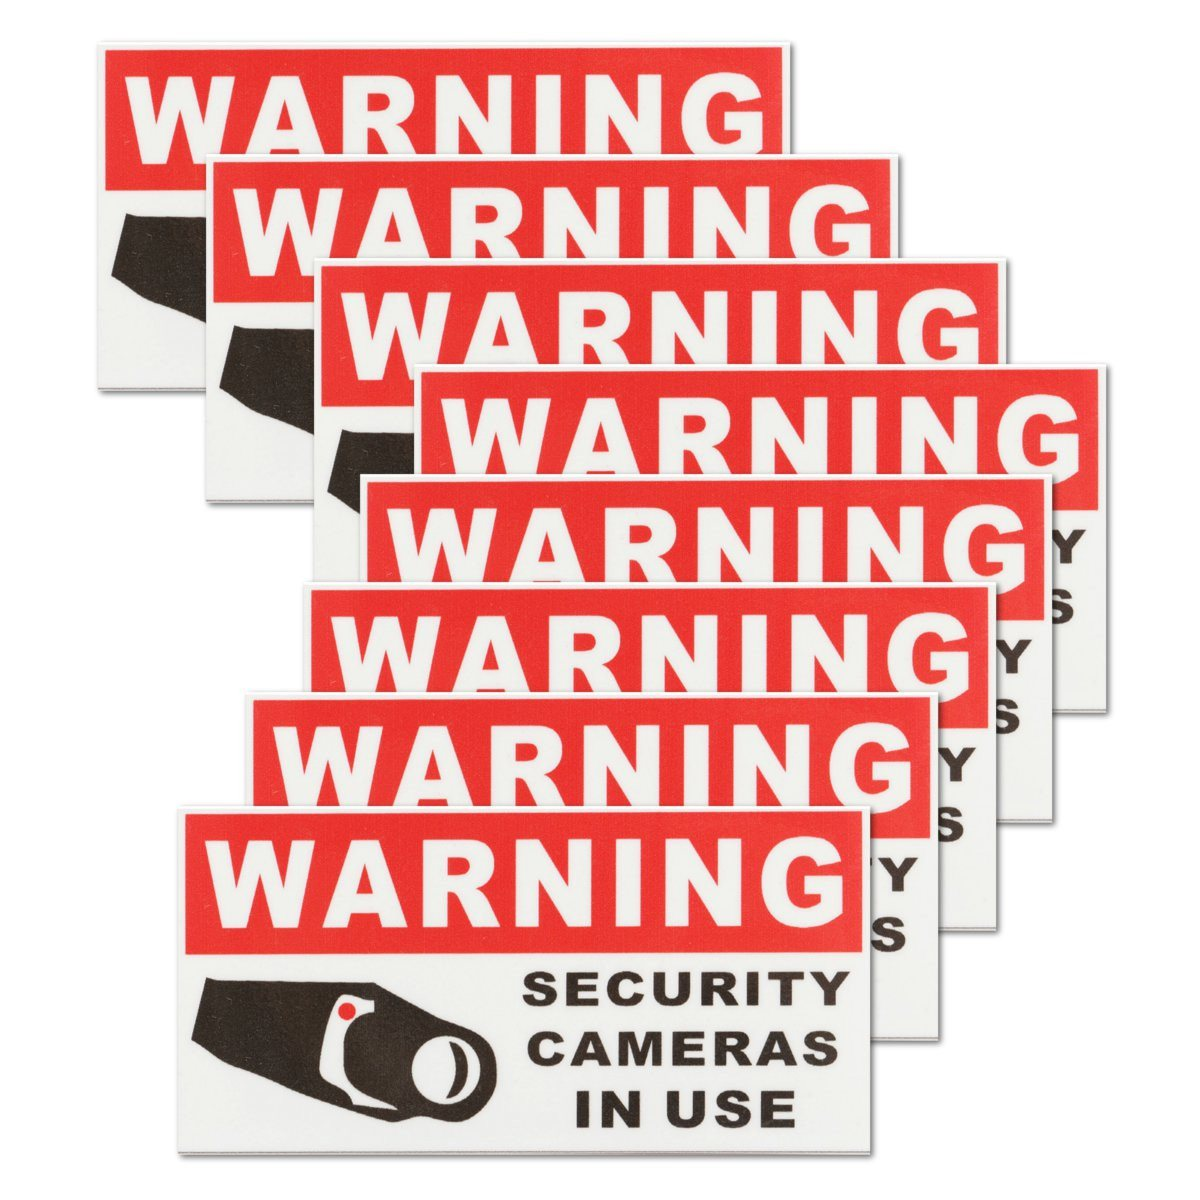 NEW 8Pcs SECURITY CAMERA IN USE  Waterproof Self adhensive Warning Stickers Safety Signs Decal|camera in|cameras camera|camera security - title=